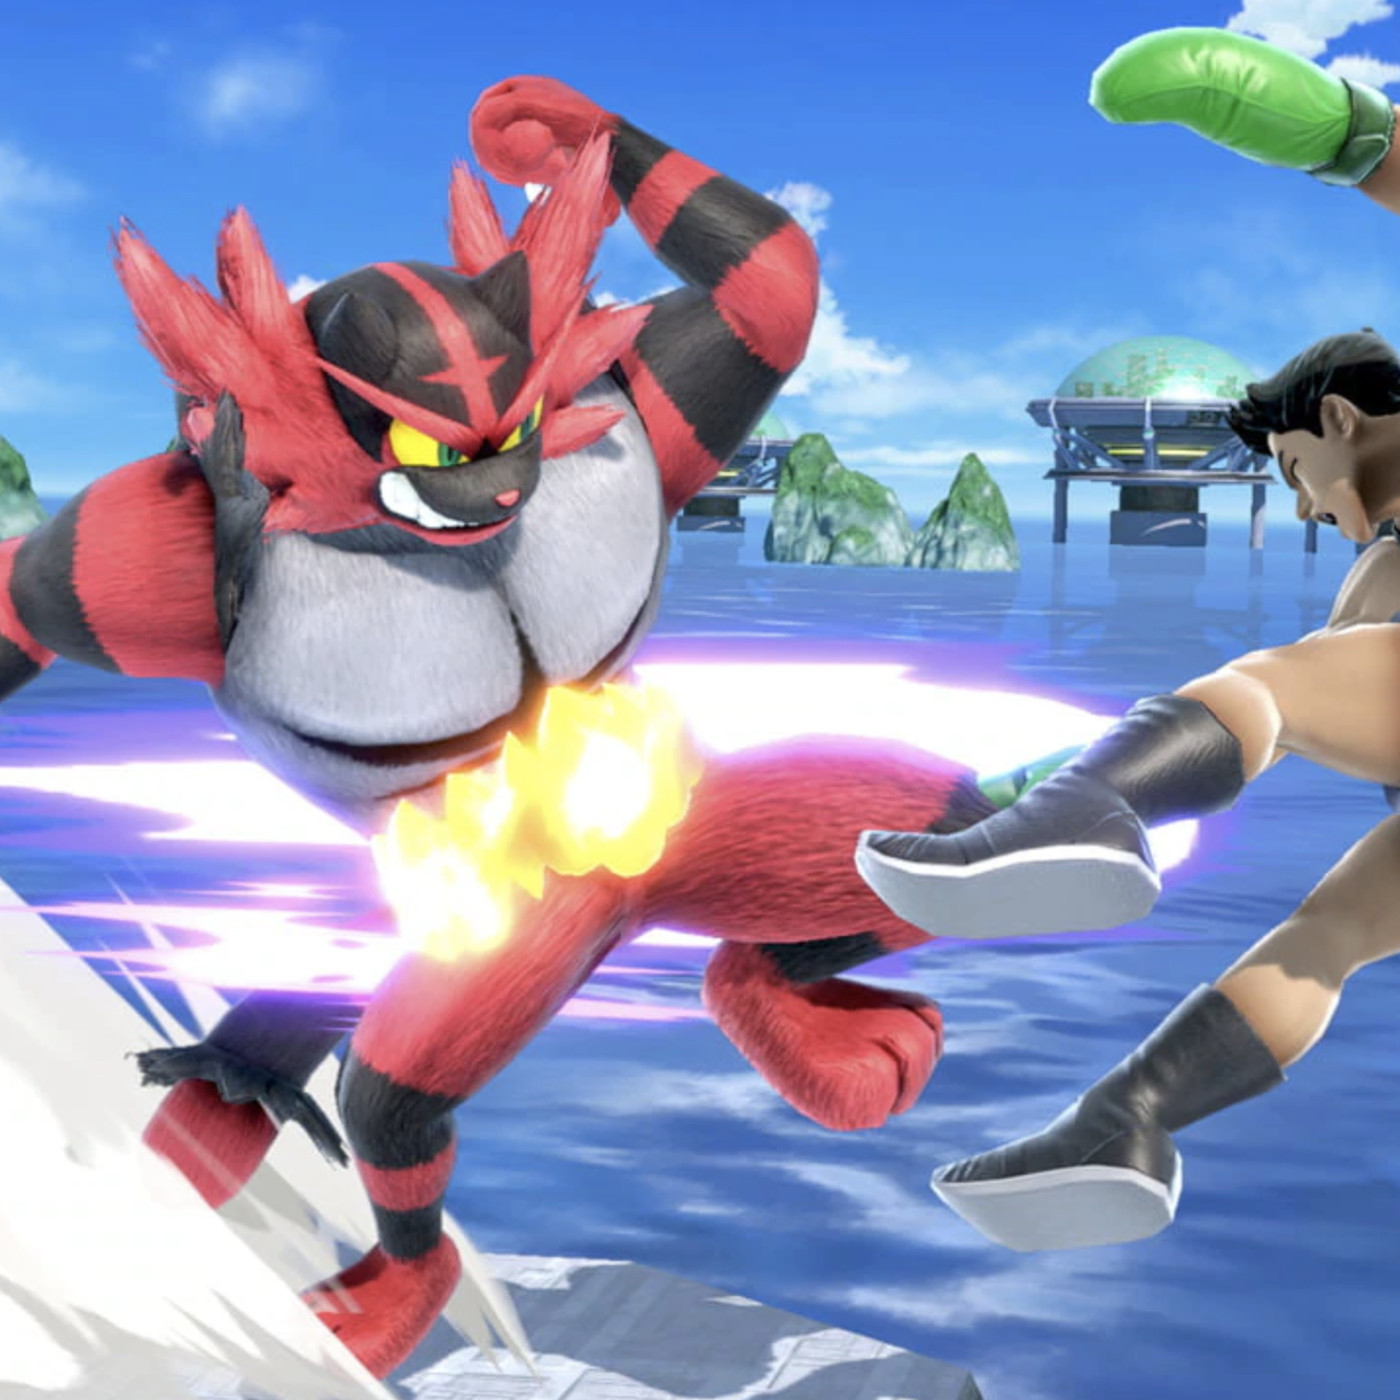 Super Smash Bros Ultimate X Fortnite Super Smash Bros Ultimate S Single Player Mode Shines On The Switch The Verge